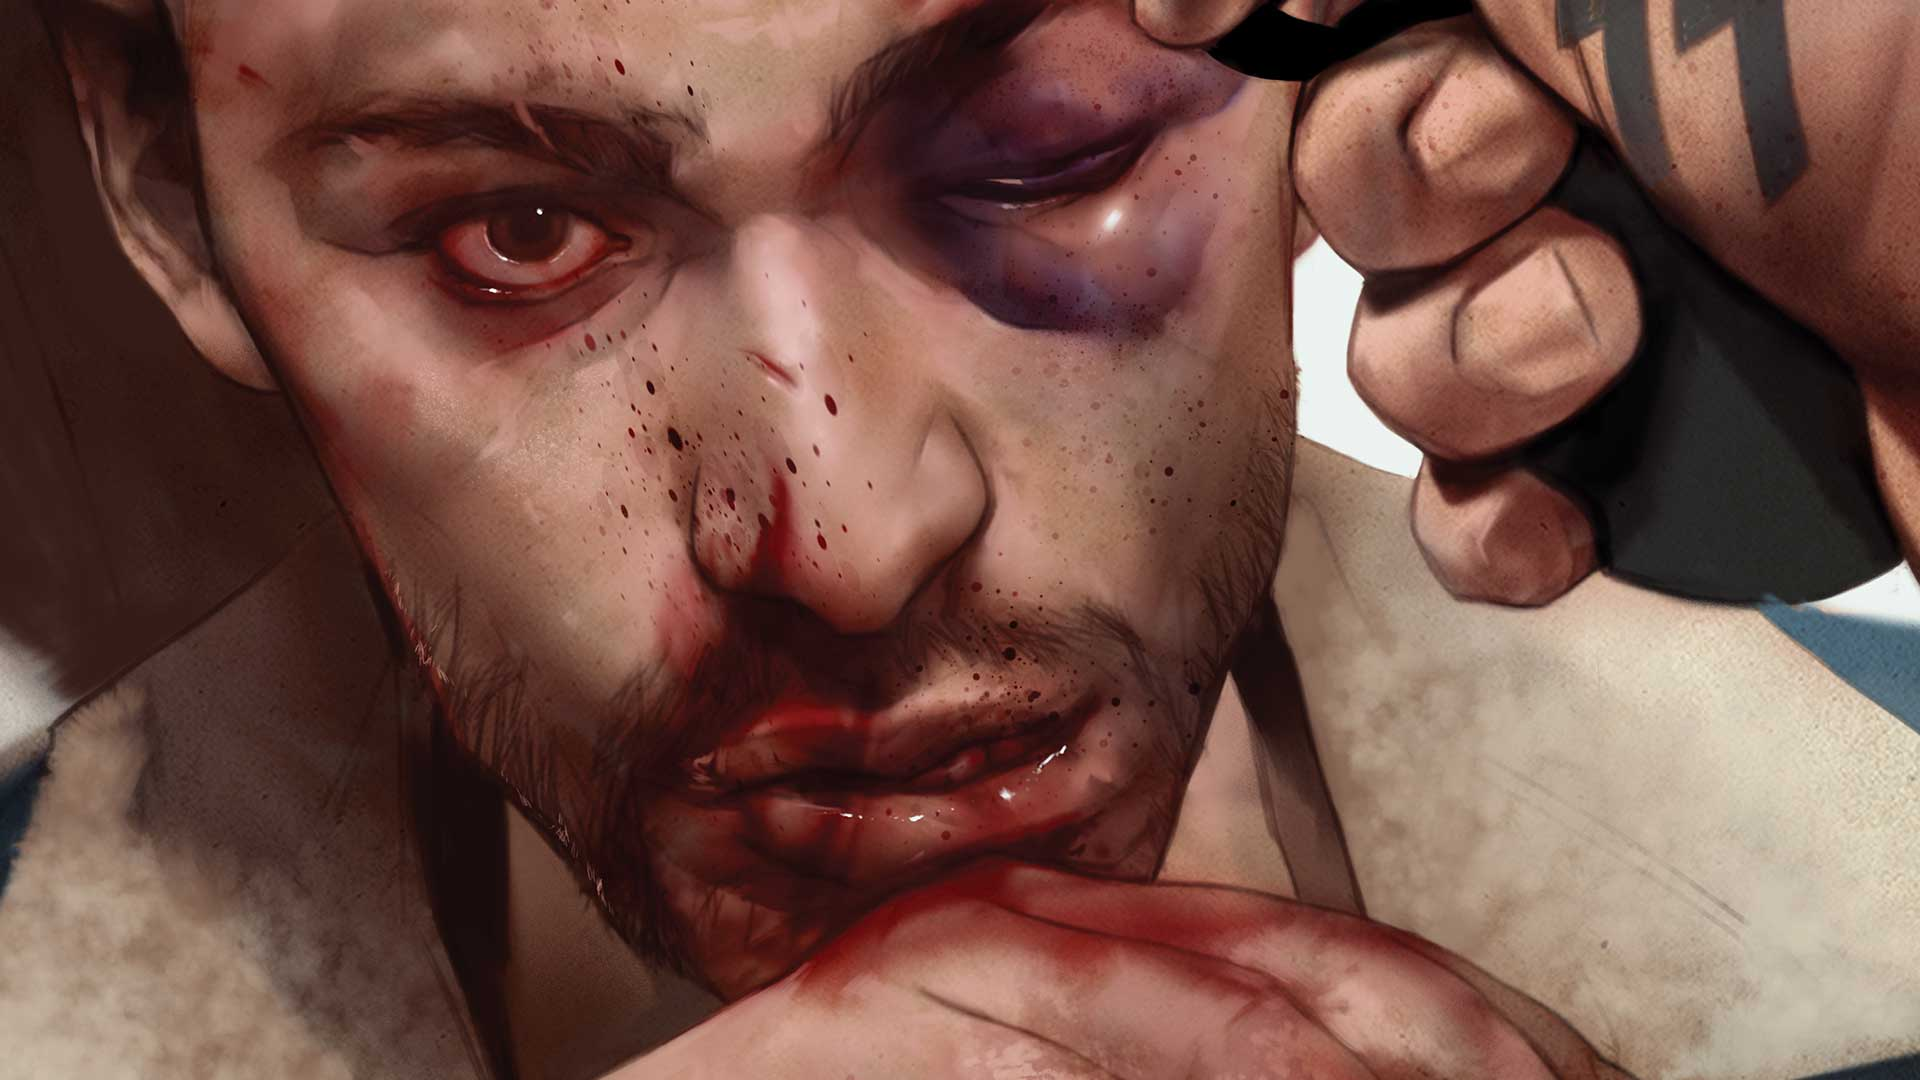 American Carnage #2 review: Uncomfortably numb